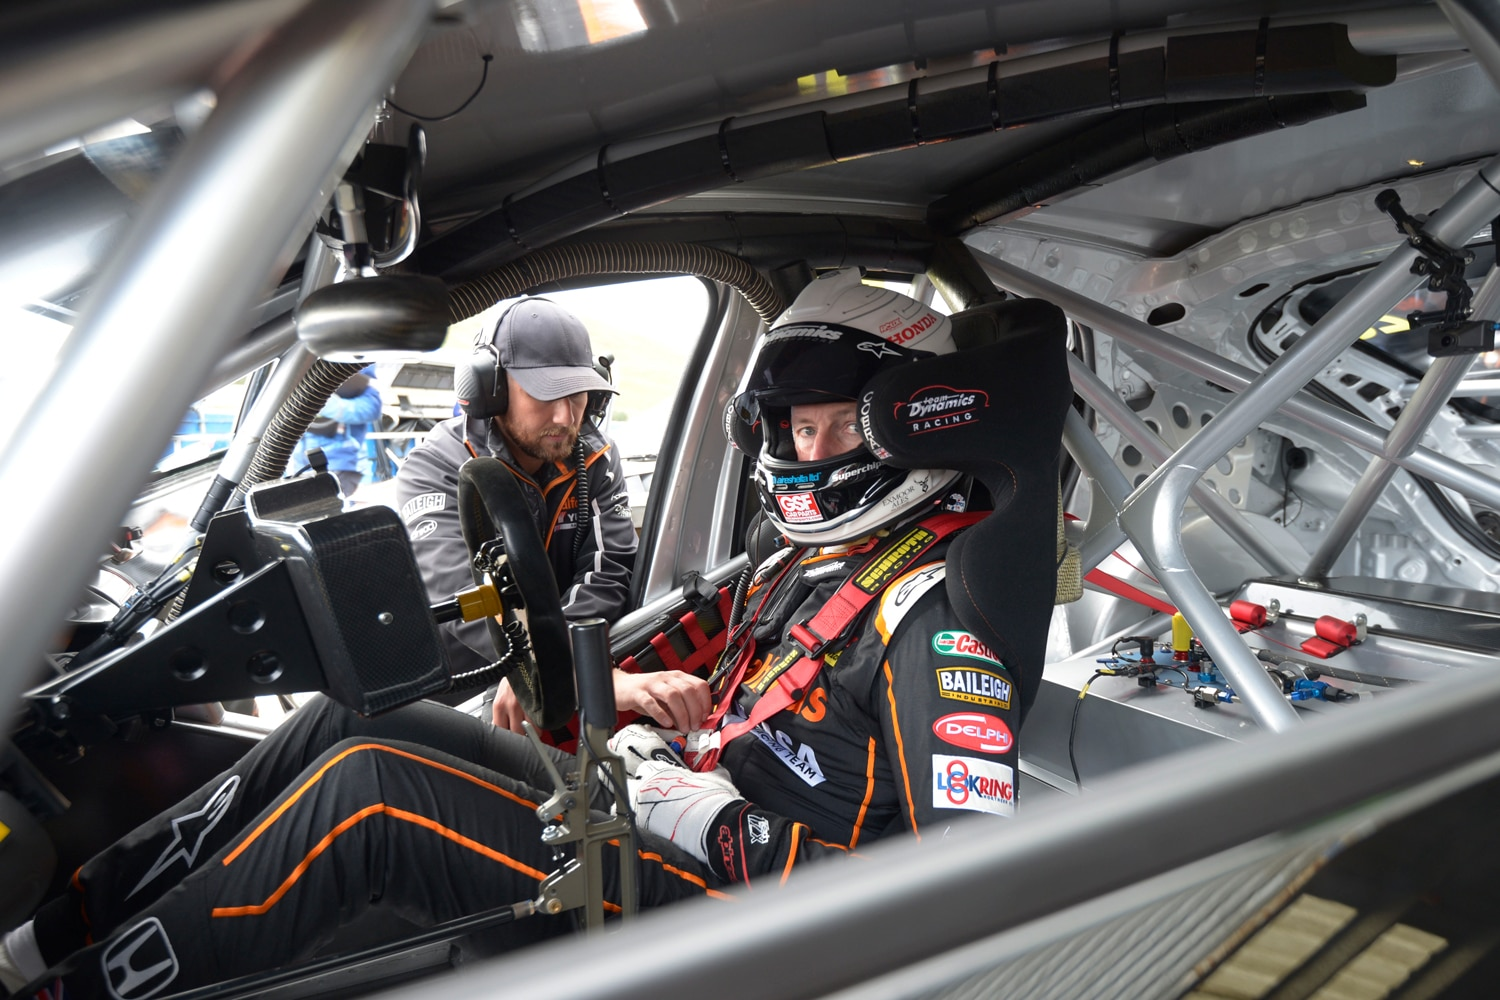 Cammish in his racecar geared up for the race with a team member talking to him through the door